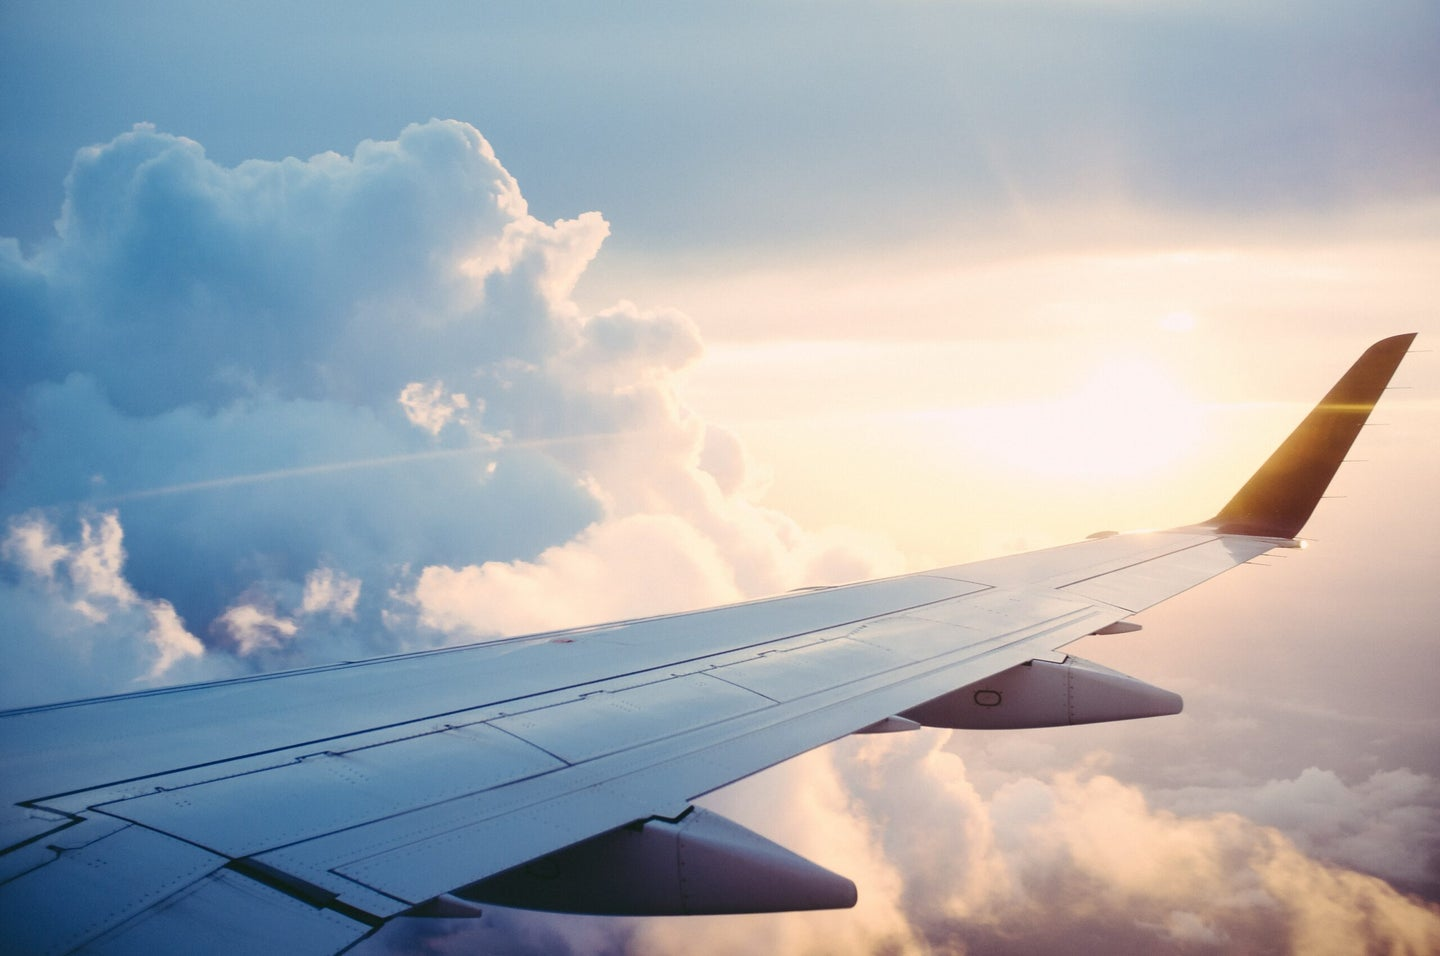 What does it actually mean for a commercial plane to hit 801 mph?